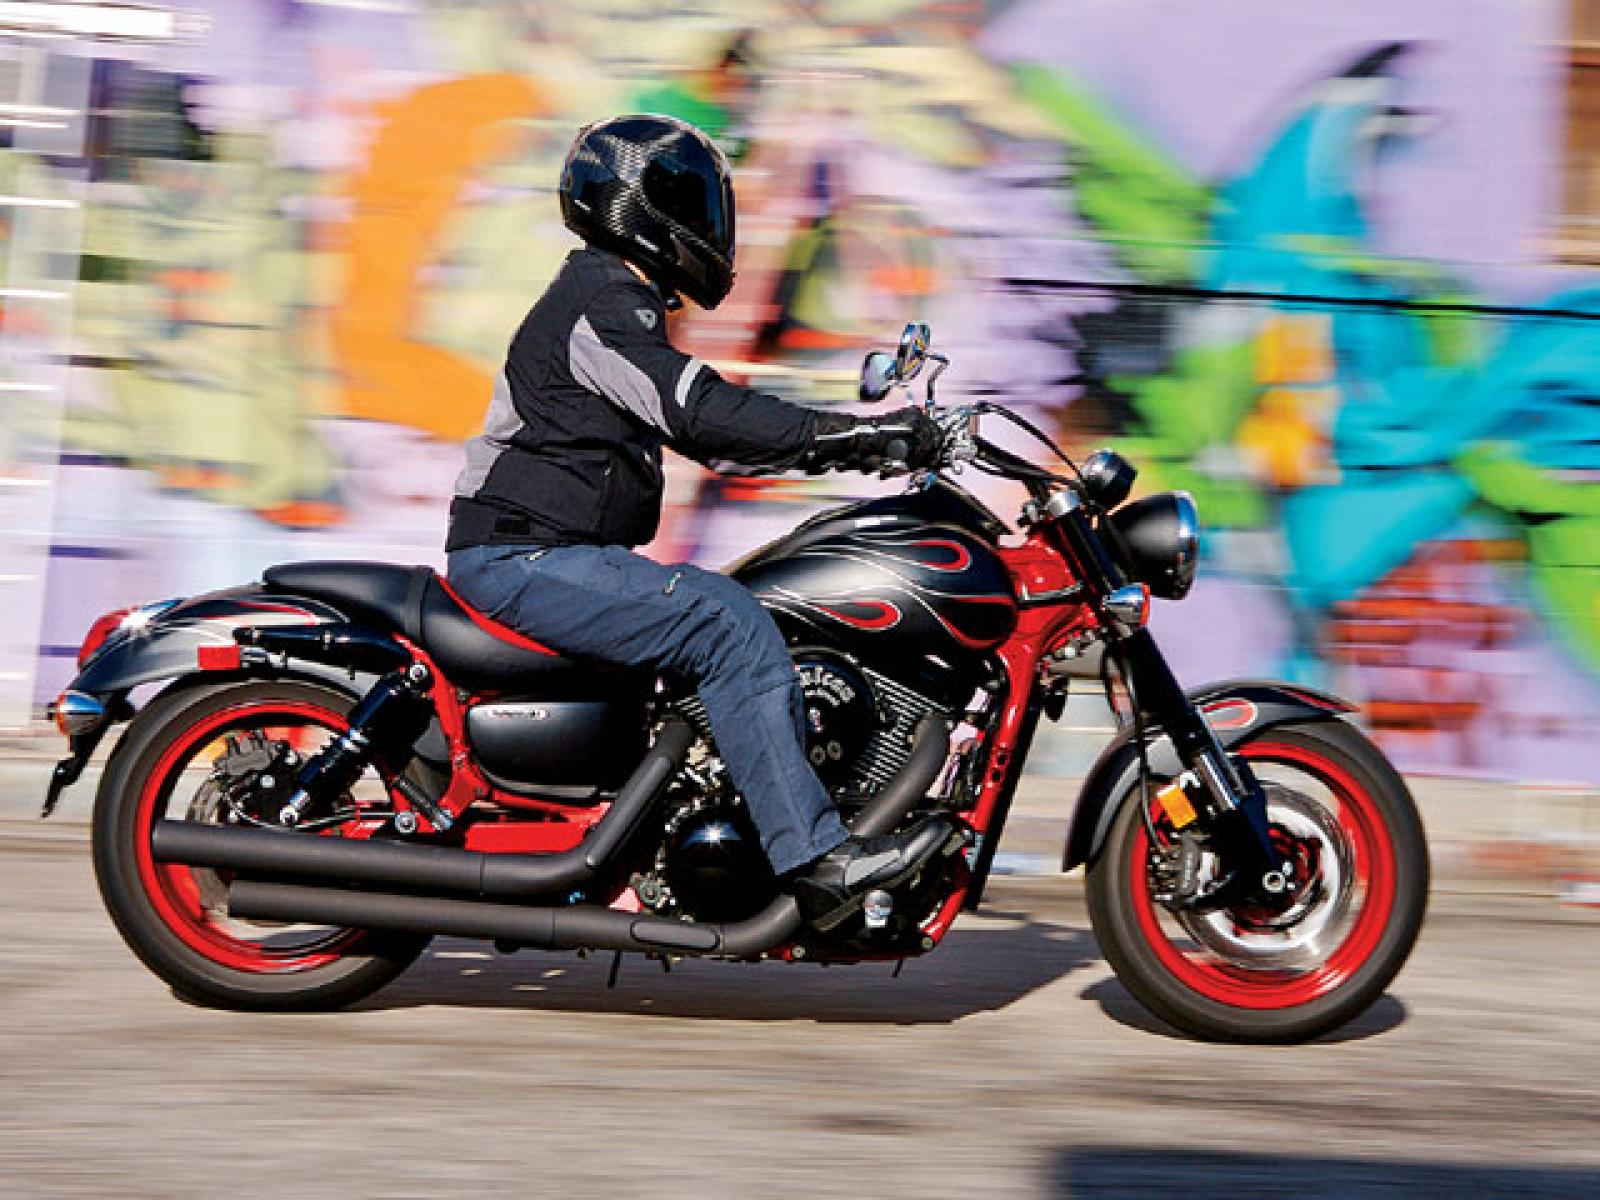 kawasaki men Buy online and ship to your participating dealer for free shop officially licensed apparel for men, women and youth shop t-shirts, hats & jackets.